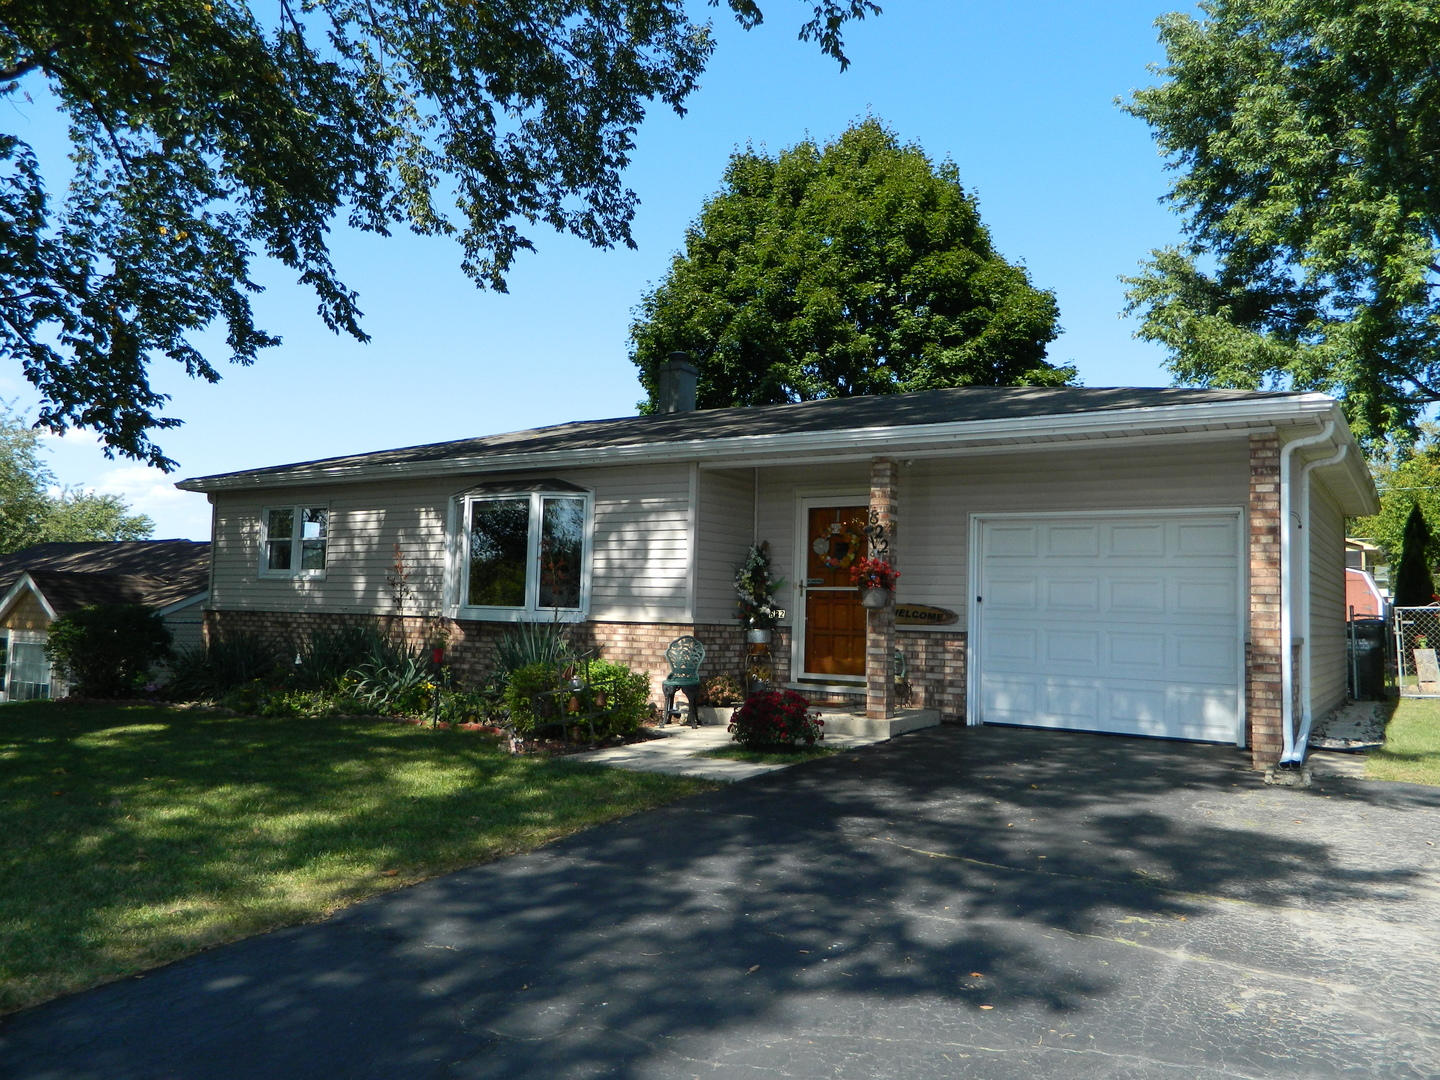 Photo for 822 Shawnee Trail, LAKE IN THE HILLS, IL 60156 (MLS # 10427588)